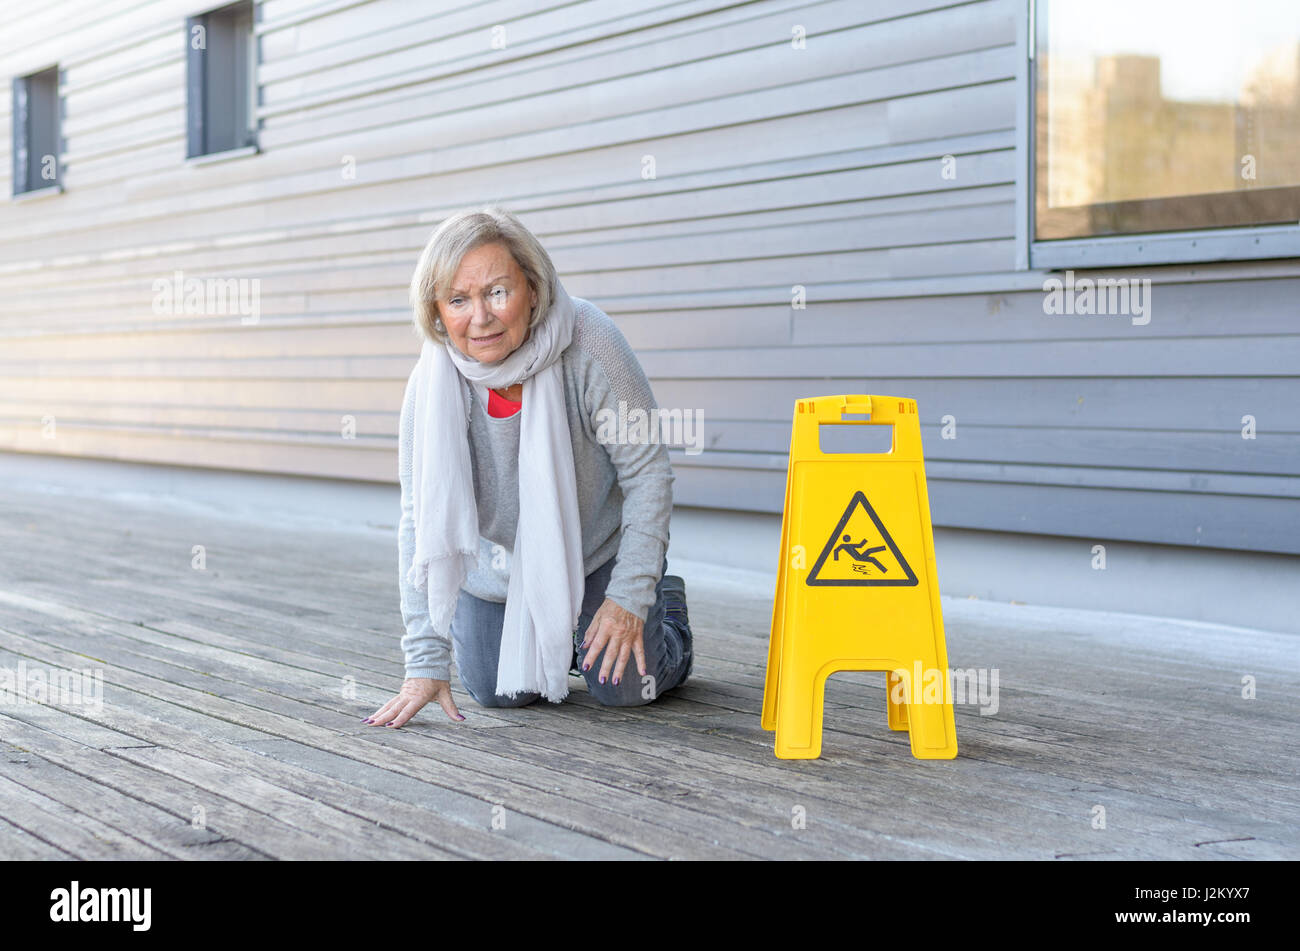 Elderly woman crawling on her knees and grimacing in pain after slipping and falling on a wet wooden deck alongside - Stock Image